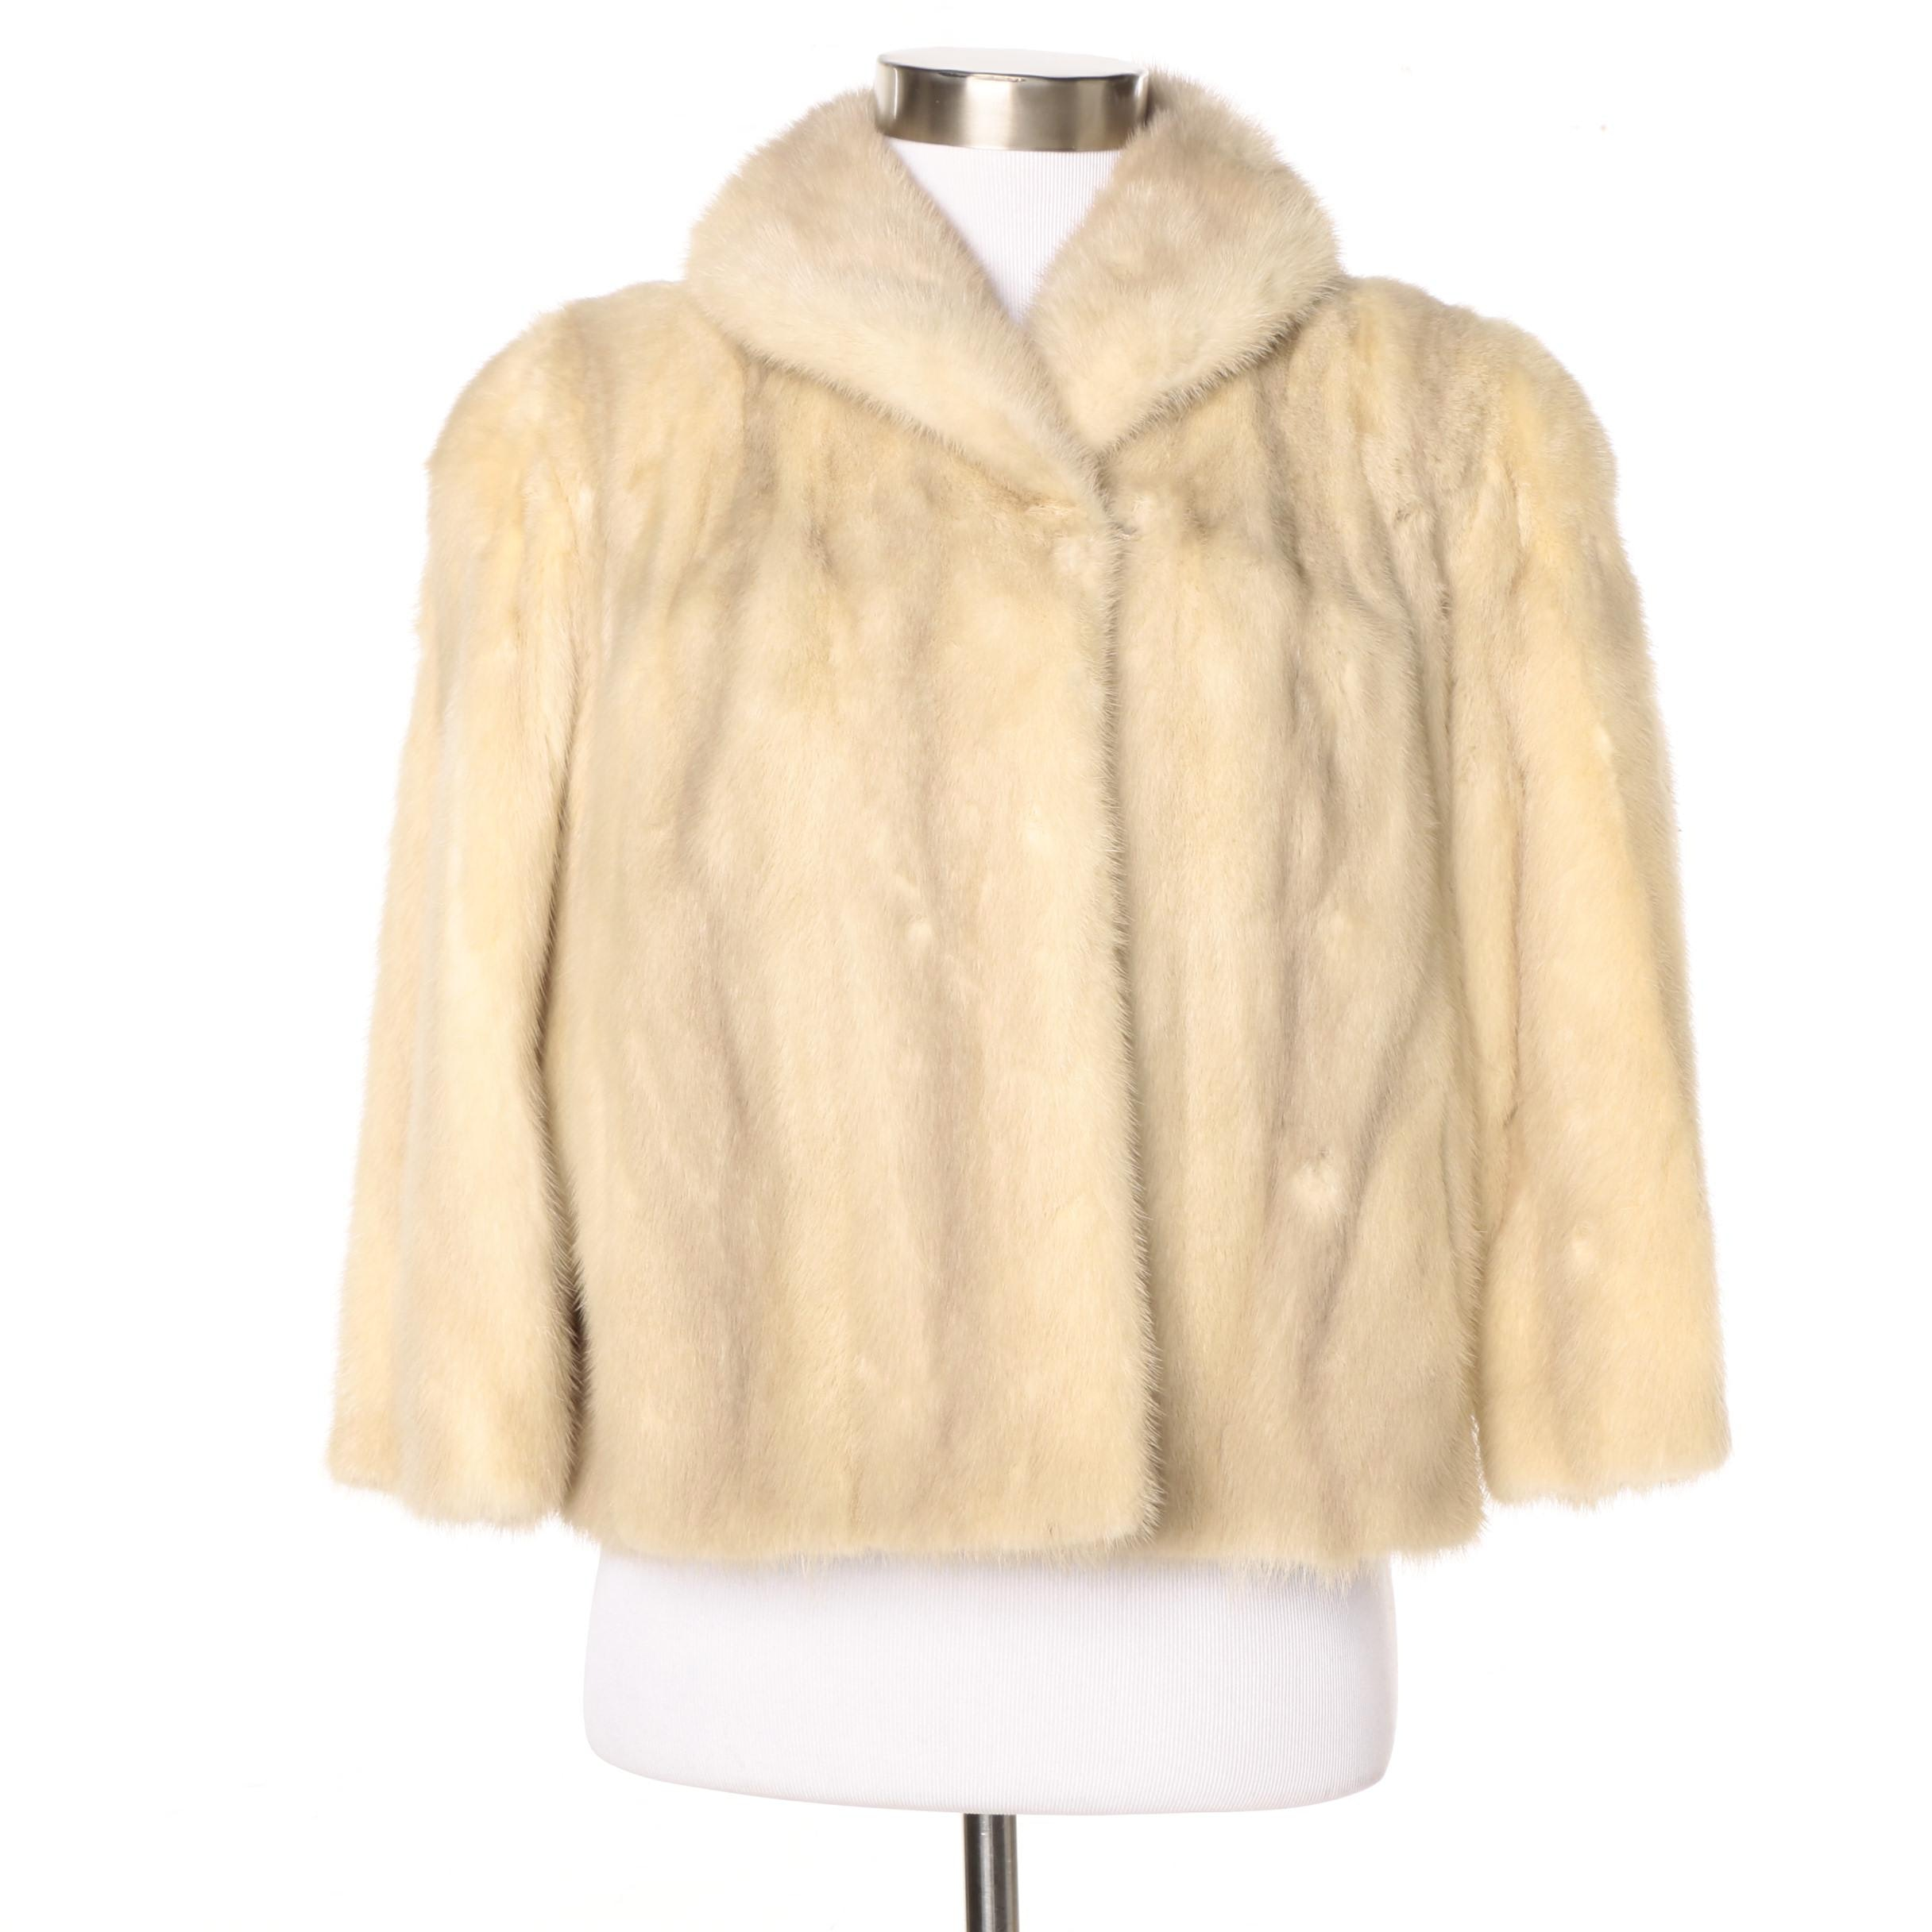 Vintage Blonde Mink Fur Jacket